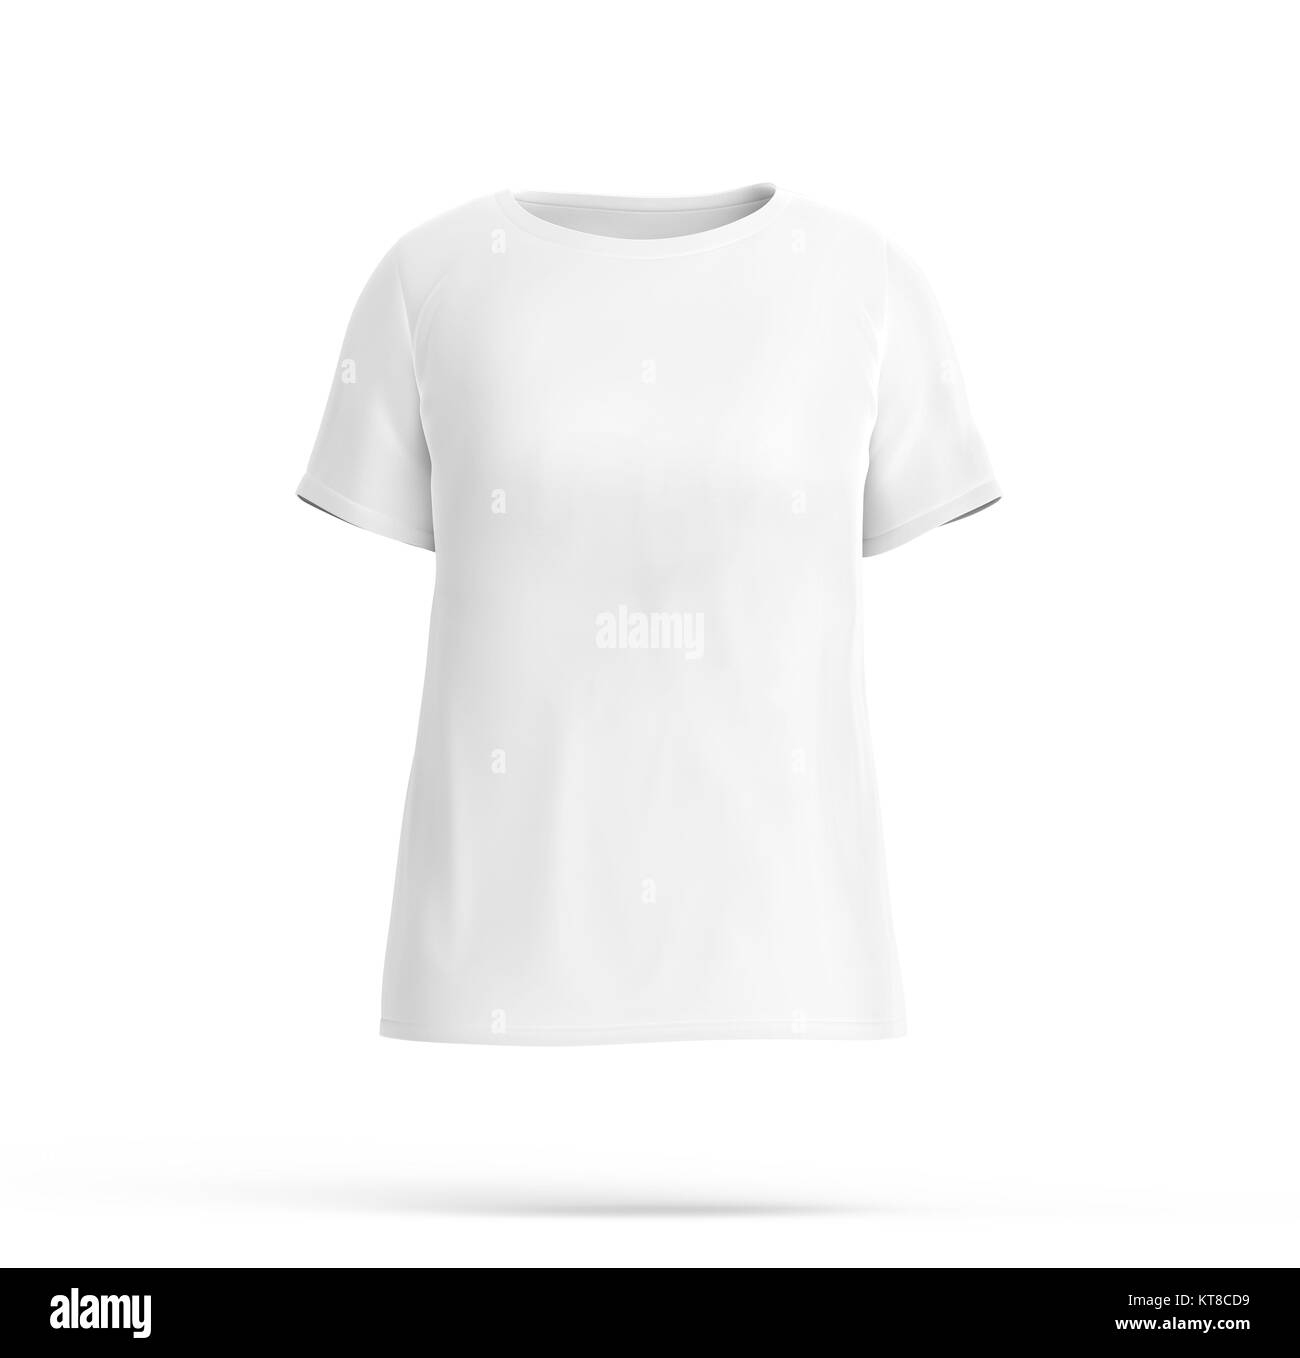 Crew Neck Shirt Mockup Blank White Cloth Template For Women With Invisible Model On Background 3d Render